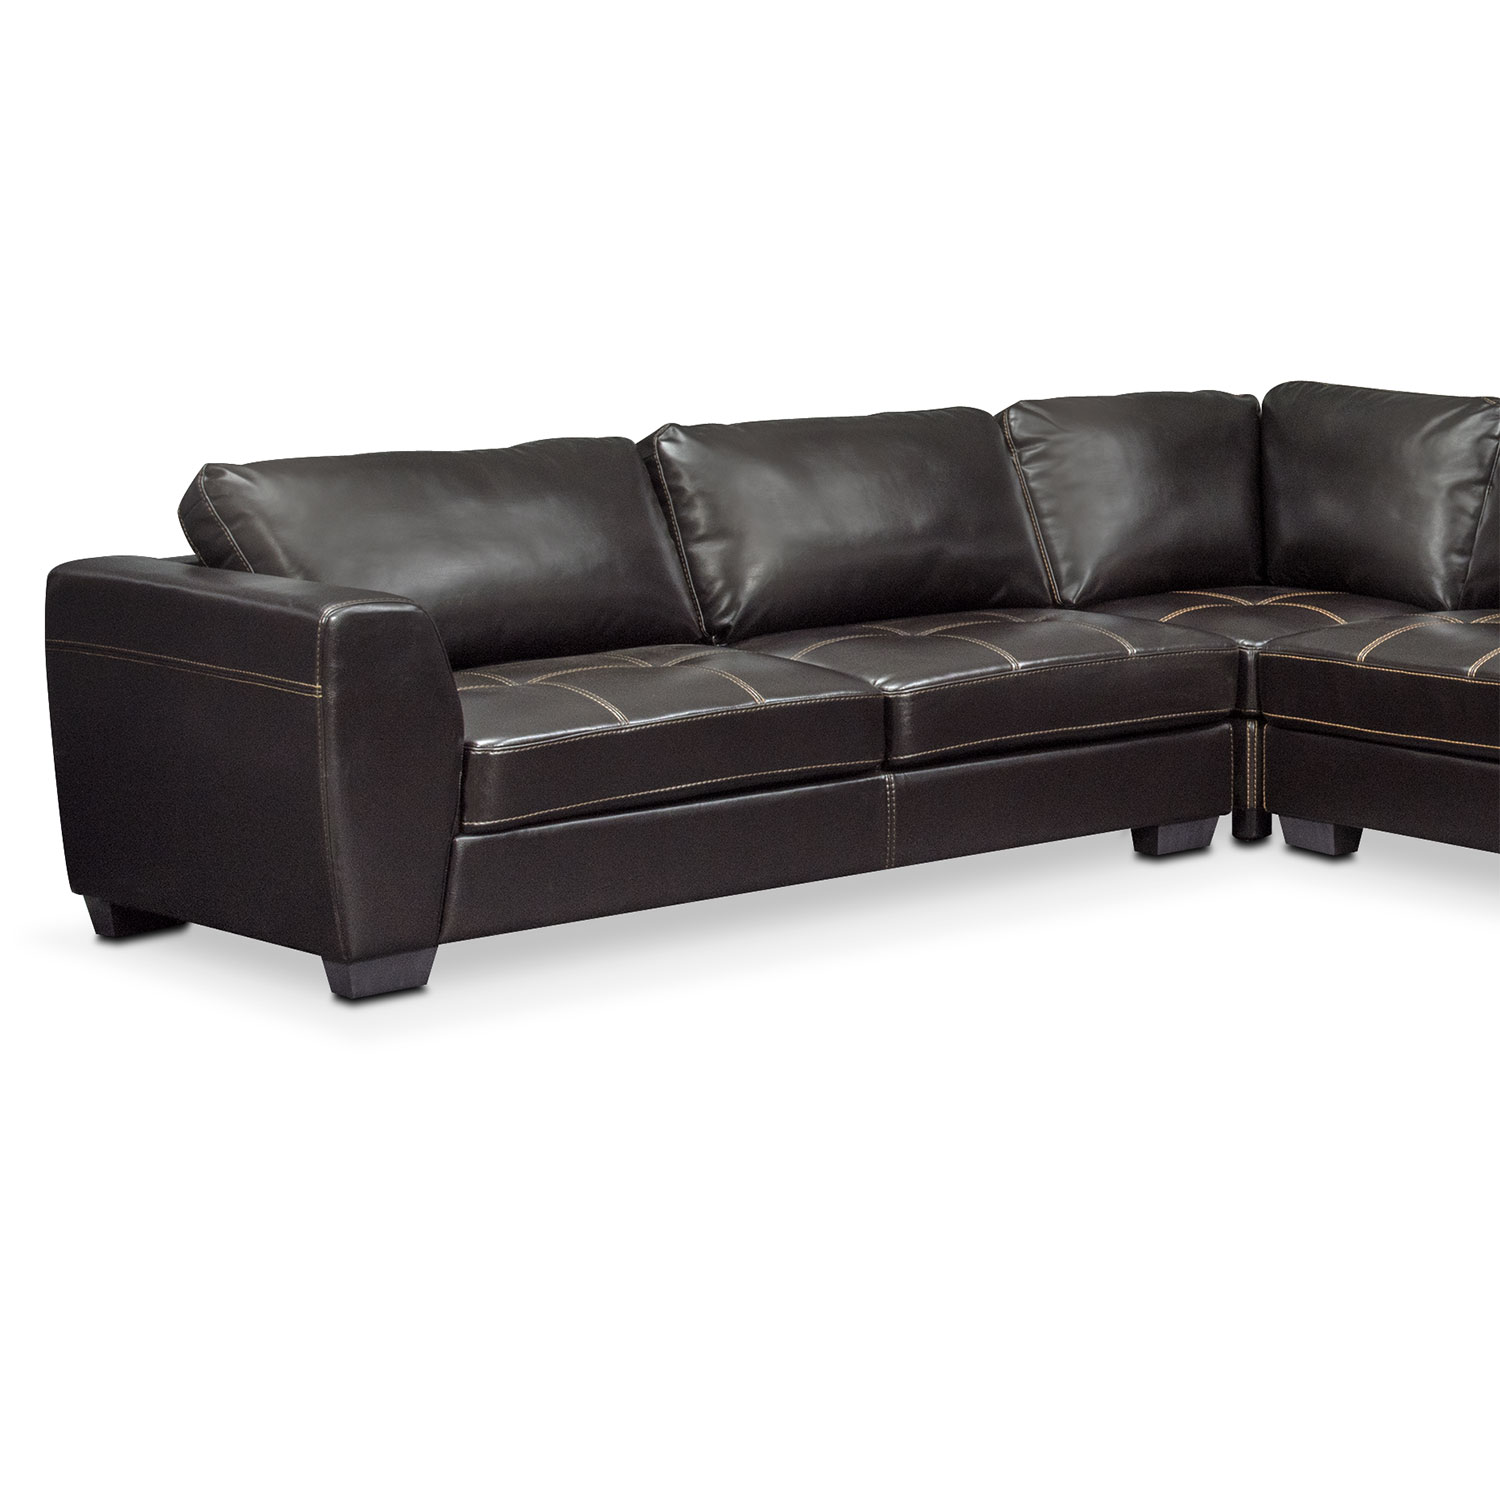 Santana 4 piece sectional with right facing chaise black for 4 piece sectional sofa with chaise